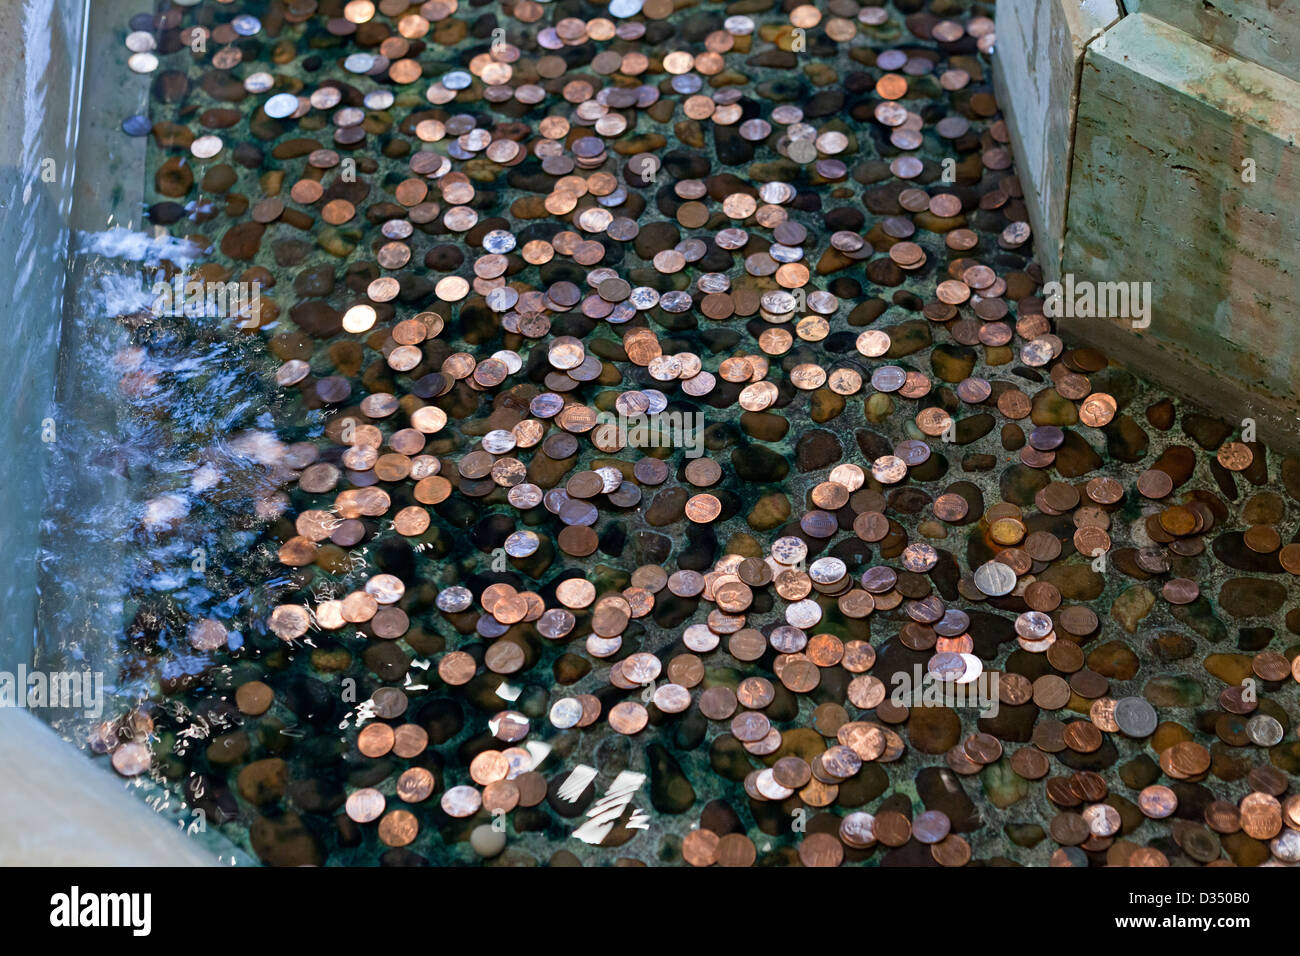 Coins in fountain - Stock Image